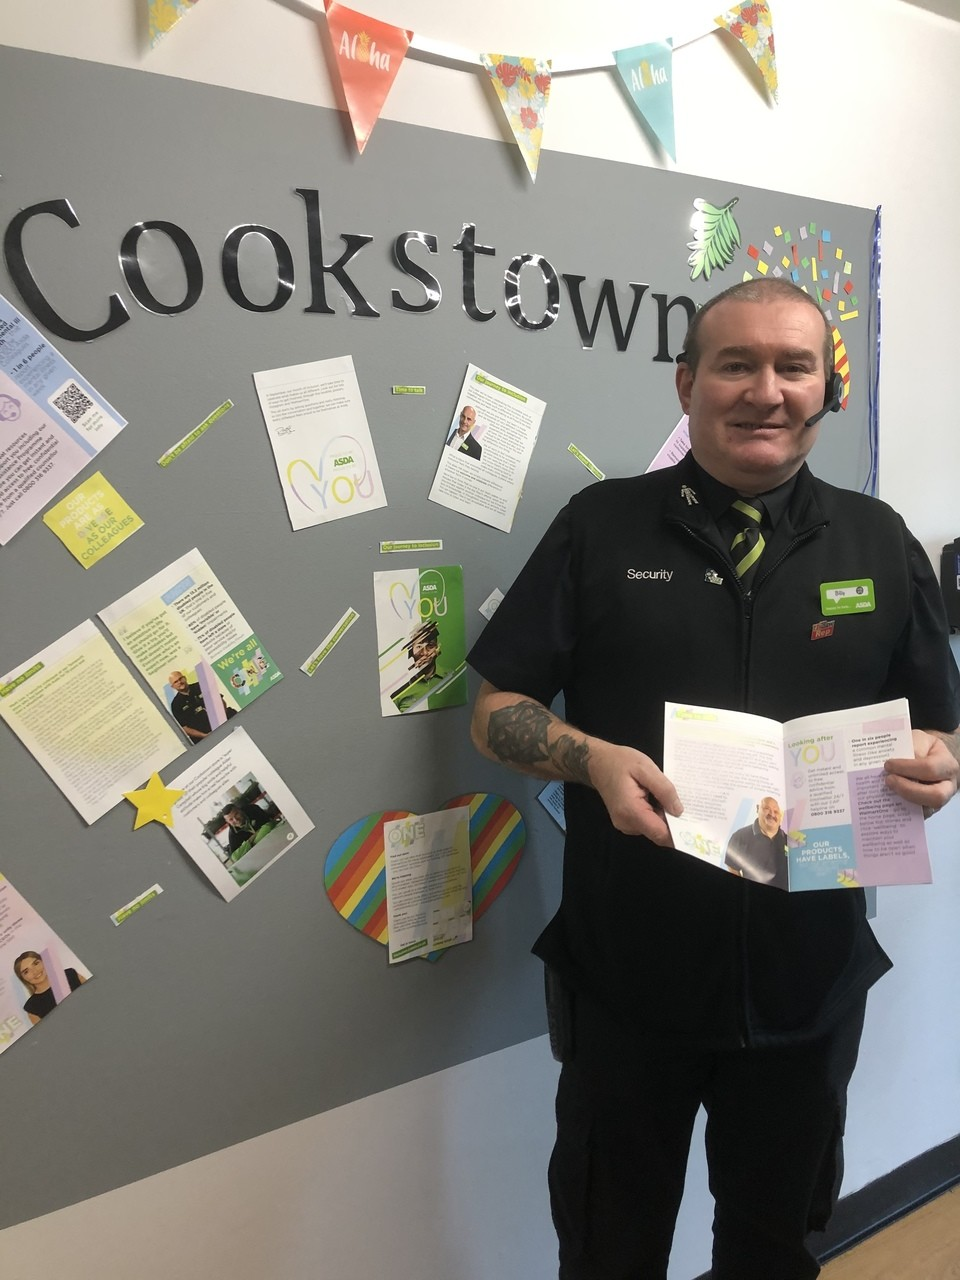 Well done Billy | Asda Cookstown